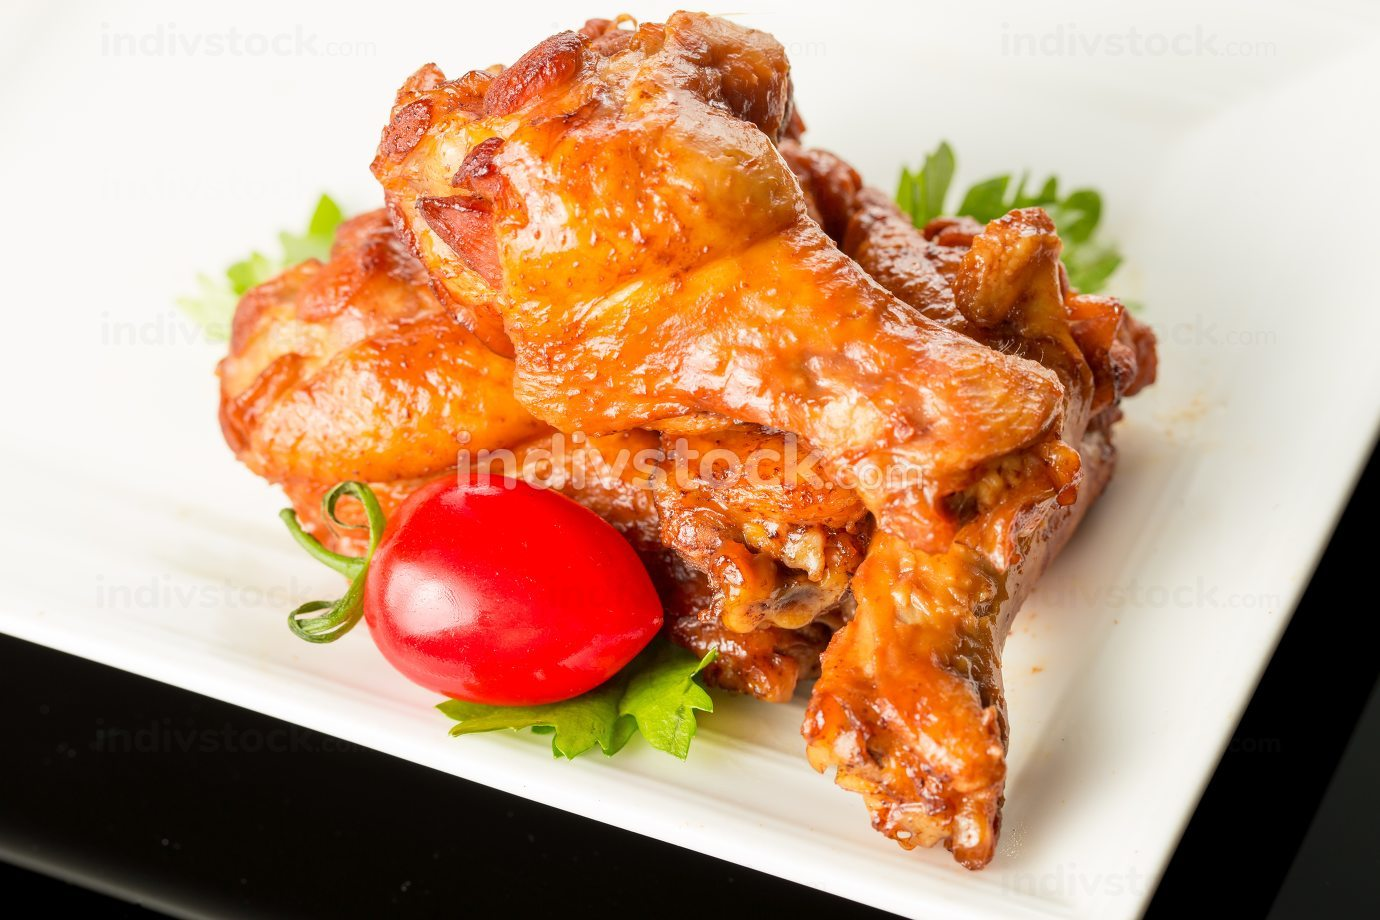 Braised chicken wings, Chinese cuisine.